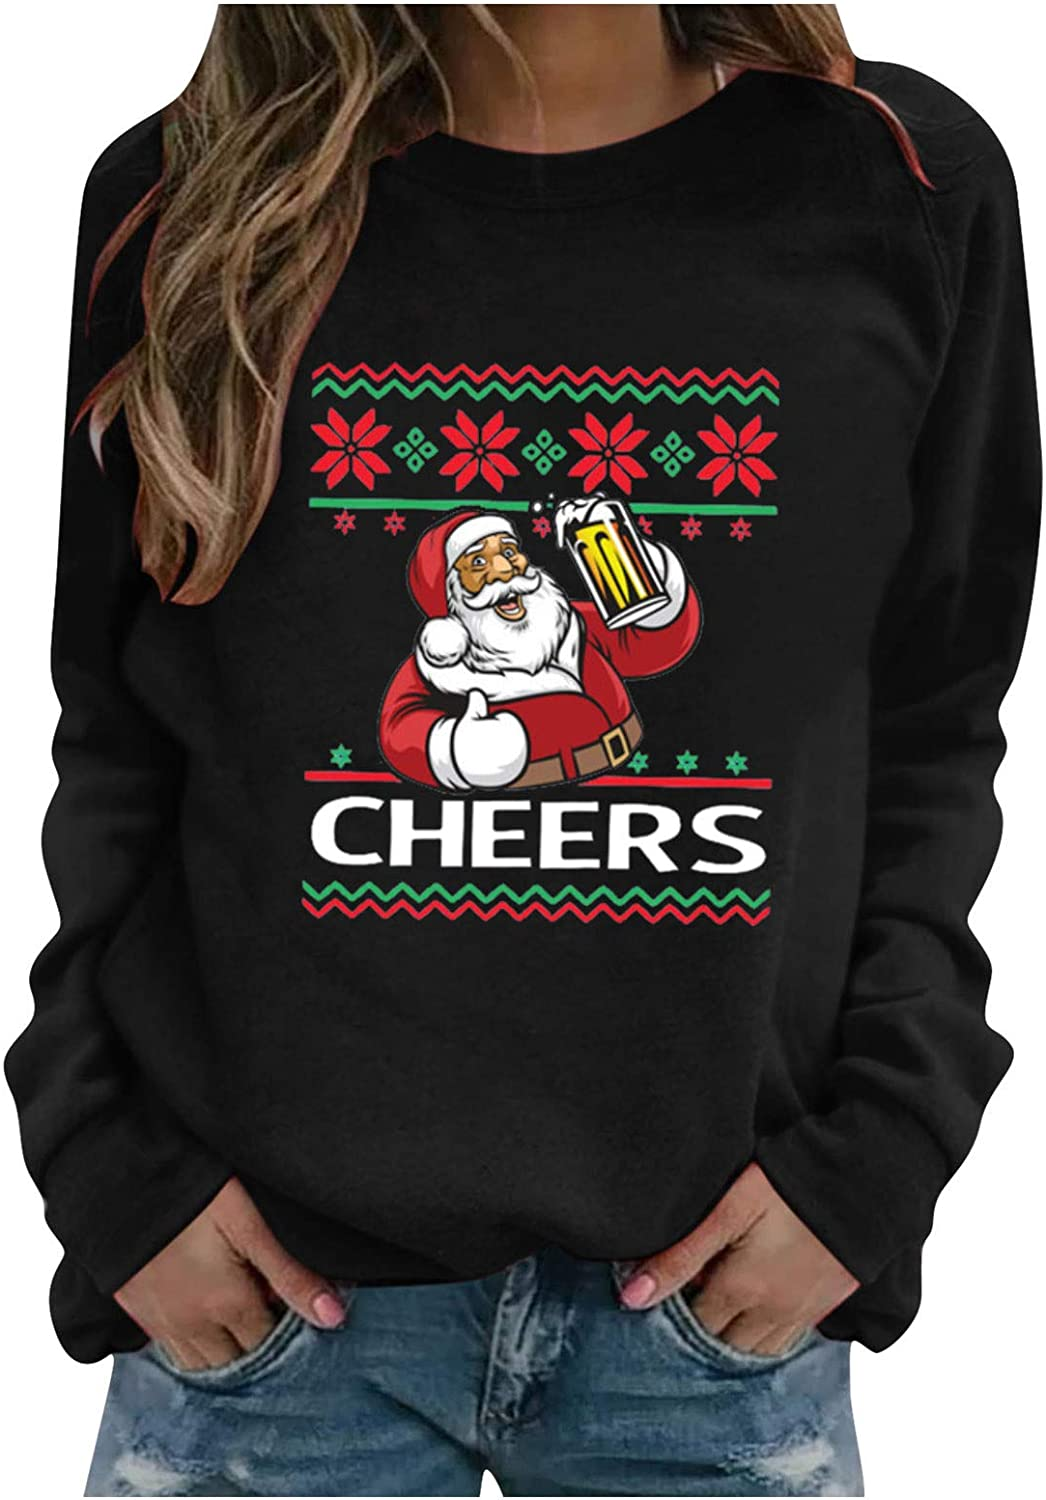 Christmas Sweatshirts for Women, Women's Casual Pullover Tops Long Sleeve Santa Graphic Sweaters Shirts Blouse Top Tee